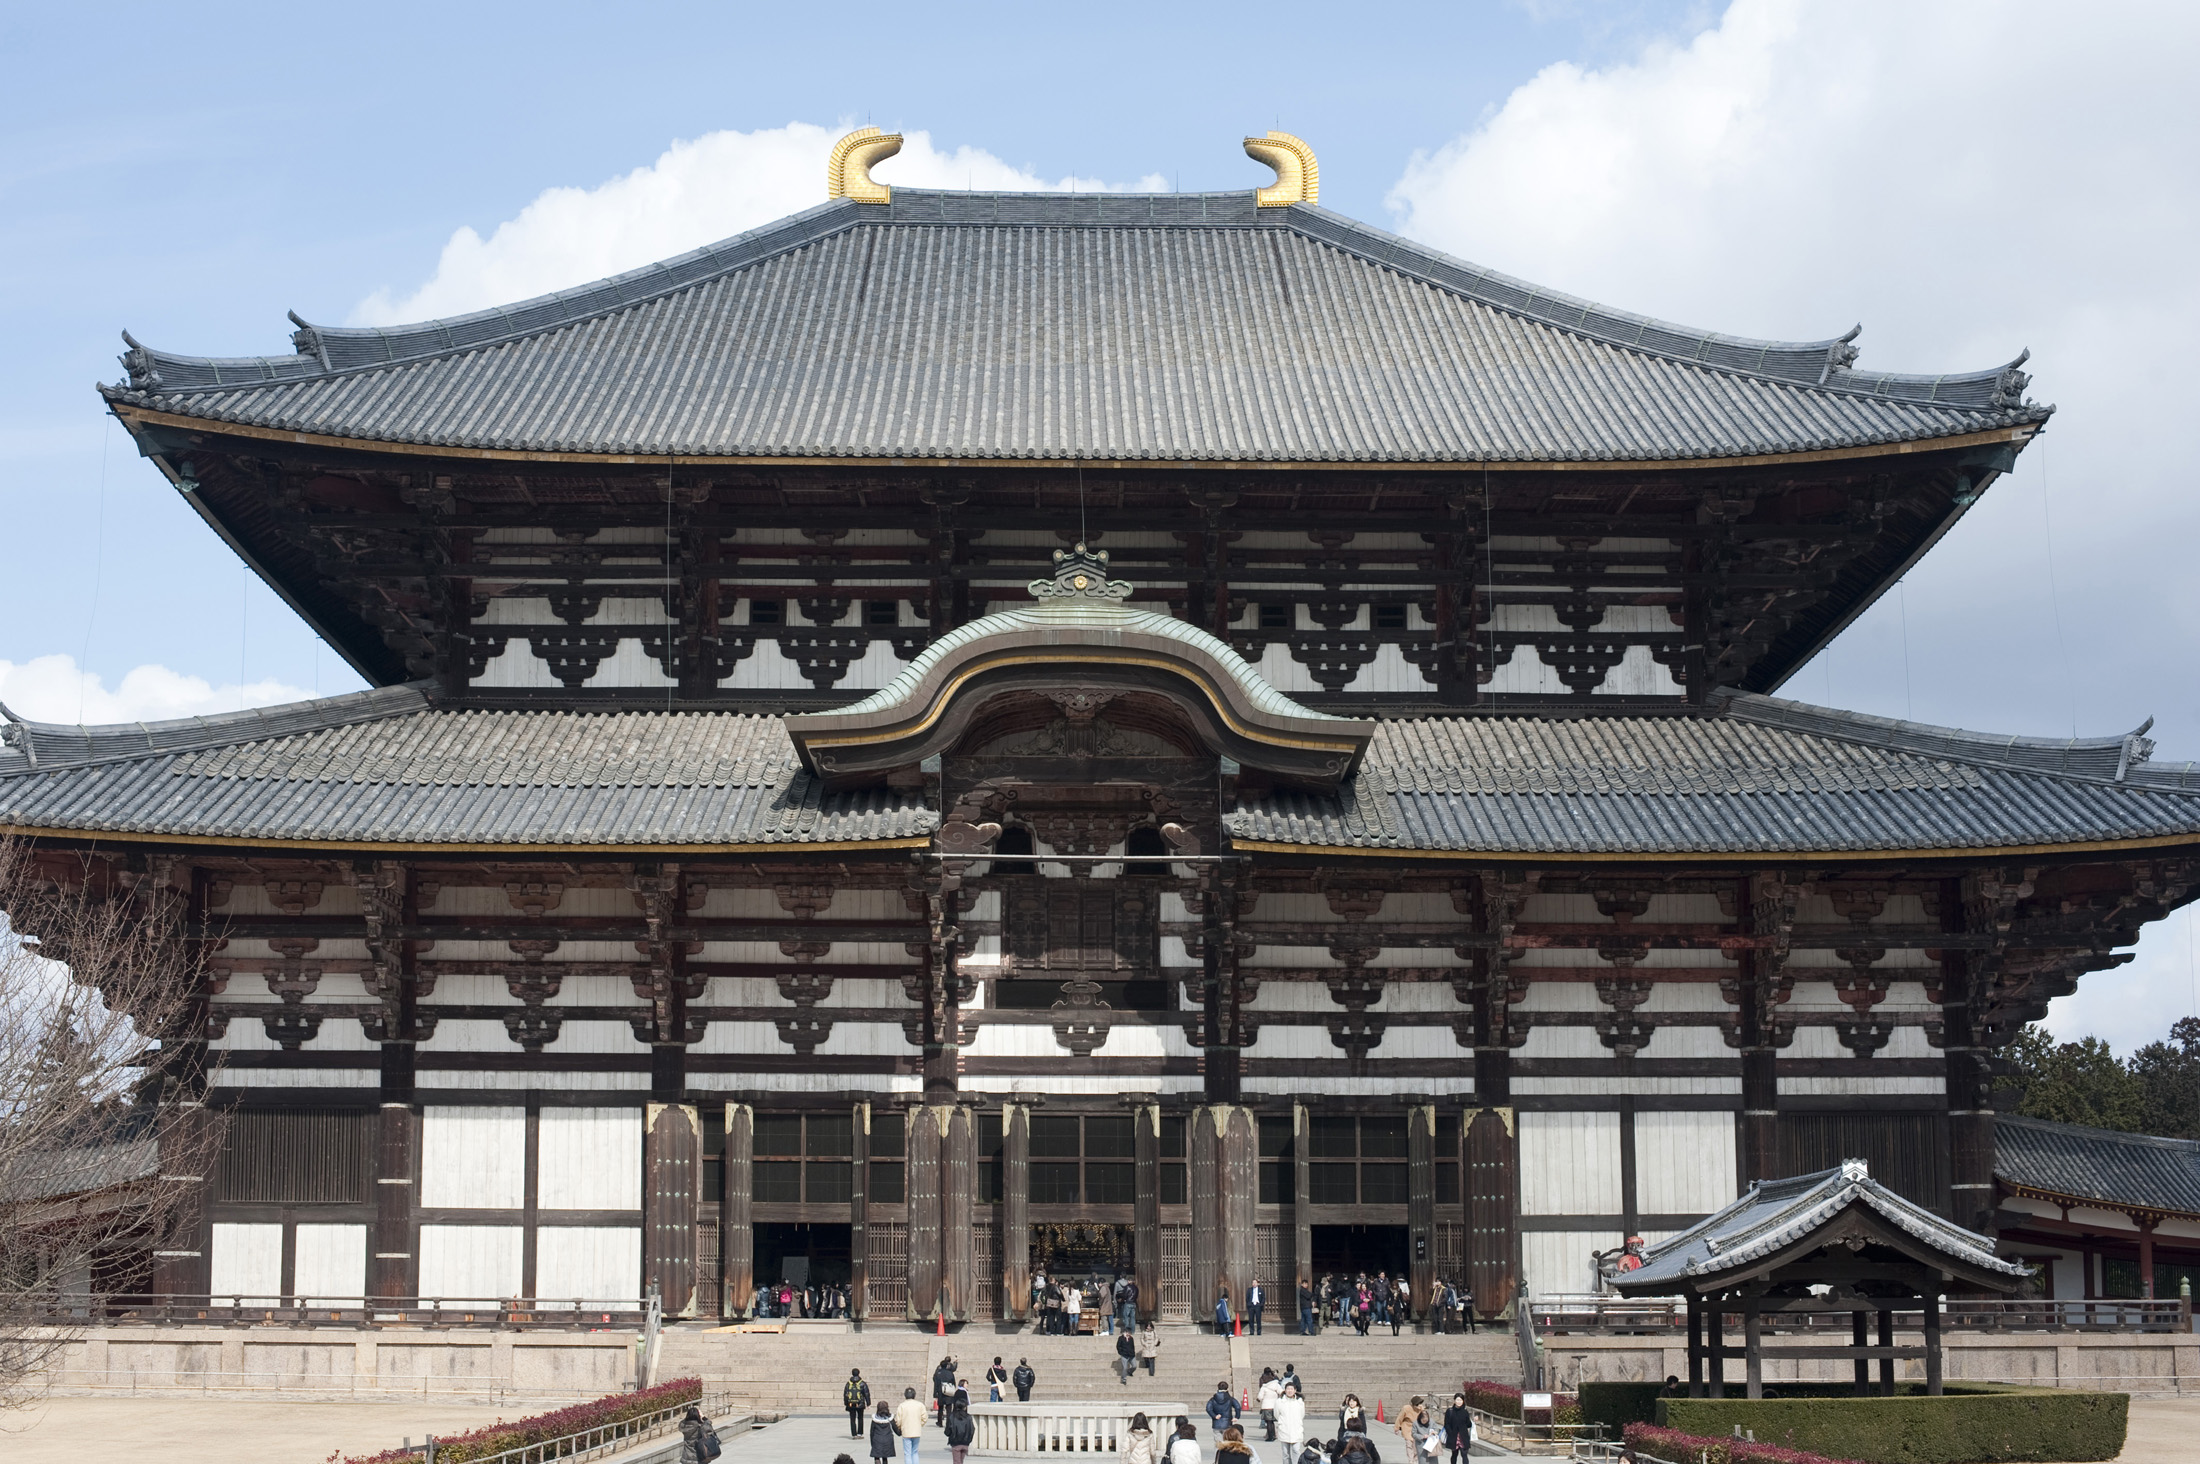 The wooden great hall or Daibutsuden at Todai-ji, one of the lagest wooden buildings in the world